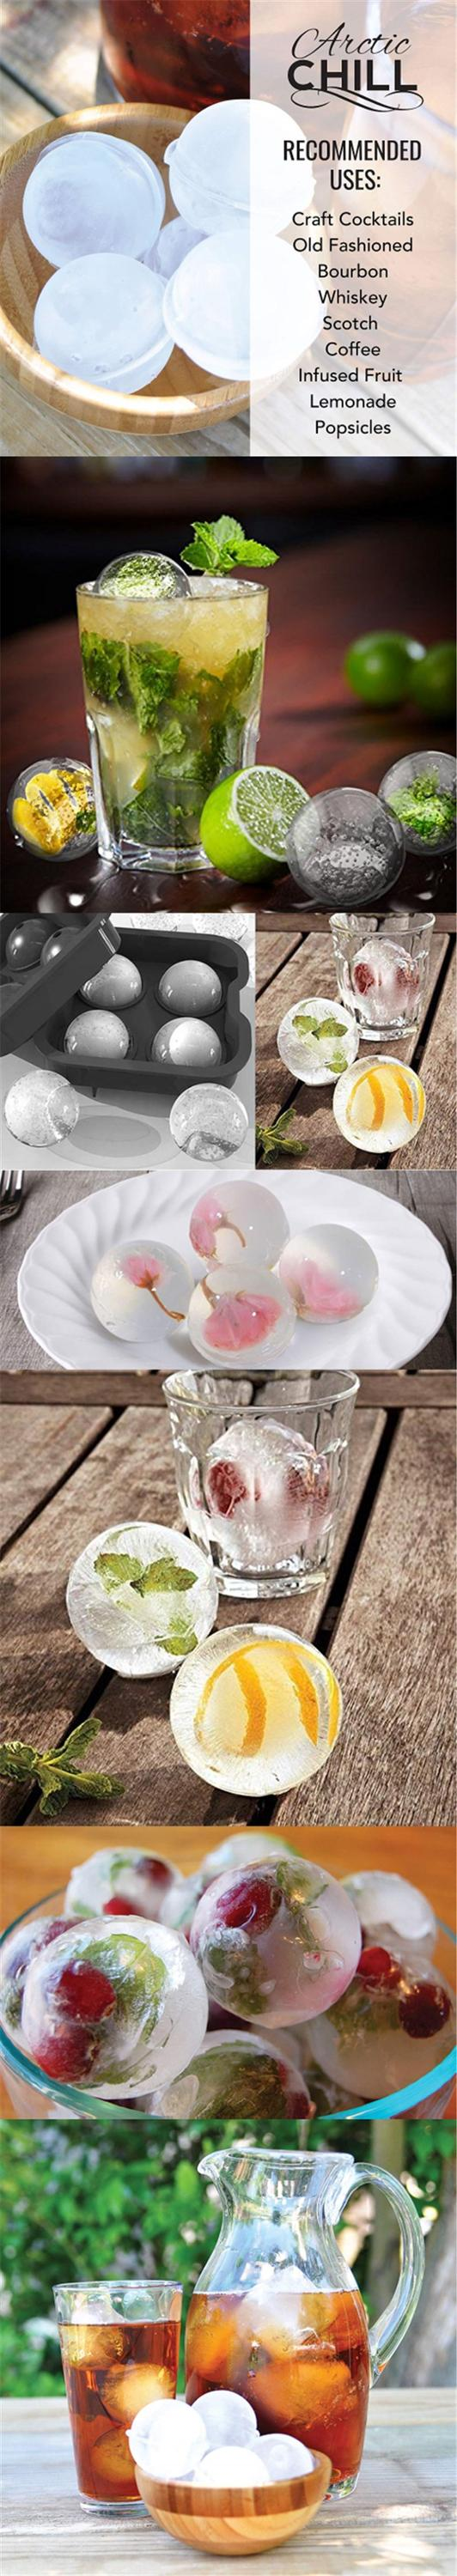 Ice Ball Maker Novelty Food-Grade Silicone Ice Mold Tray With 4 X 4.5cm Ball Capacity